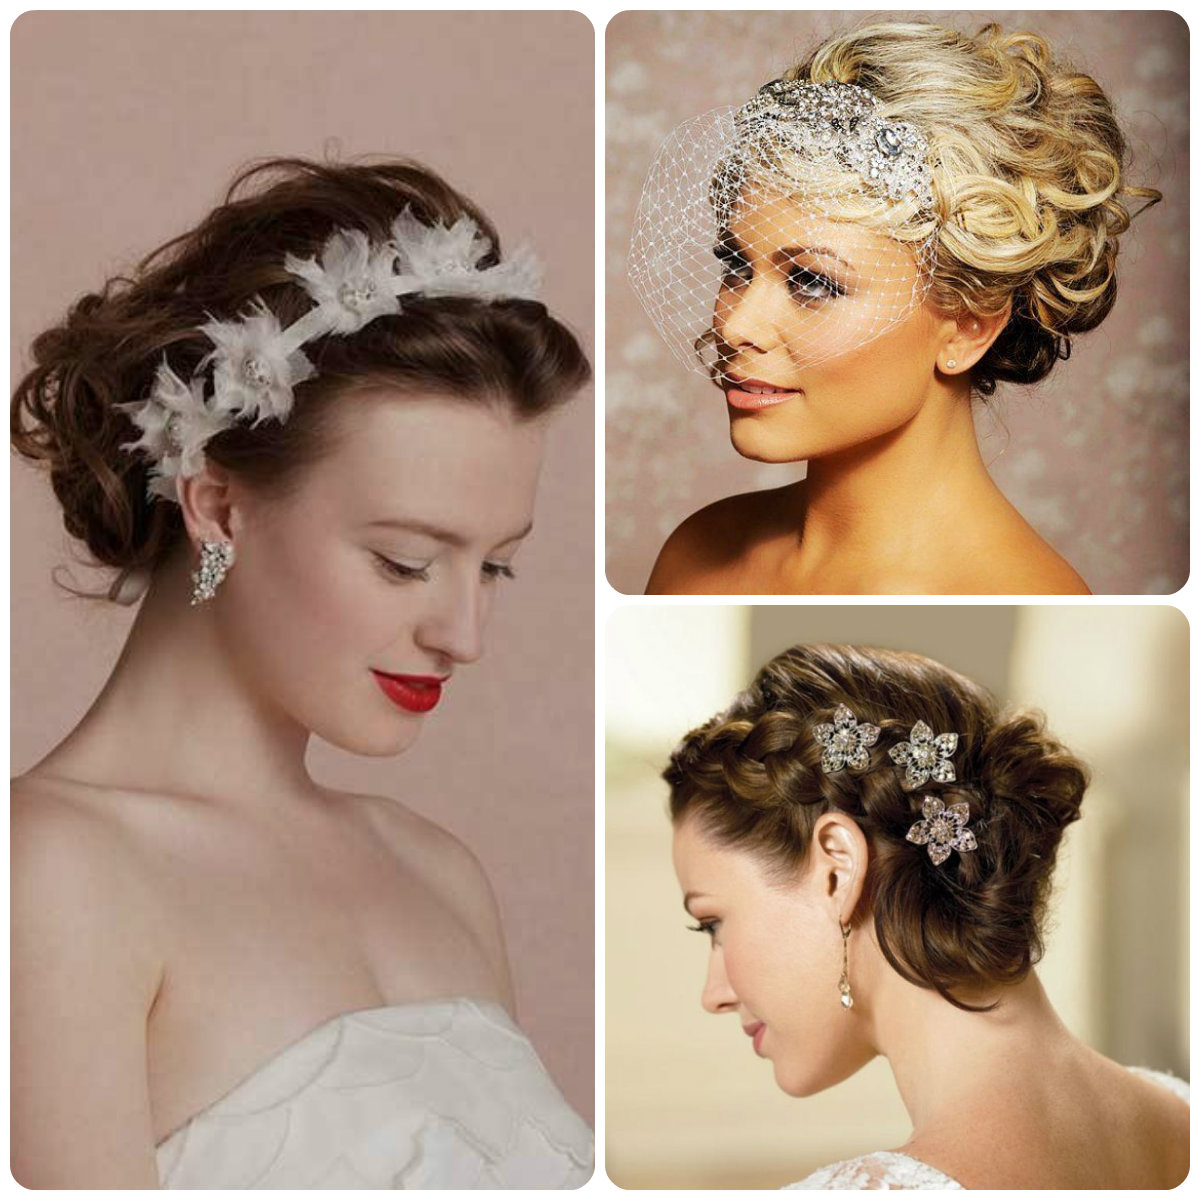 The Wedding Hairstyles Trends 2015